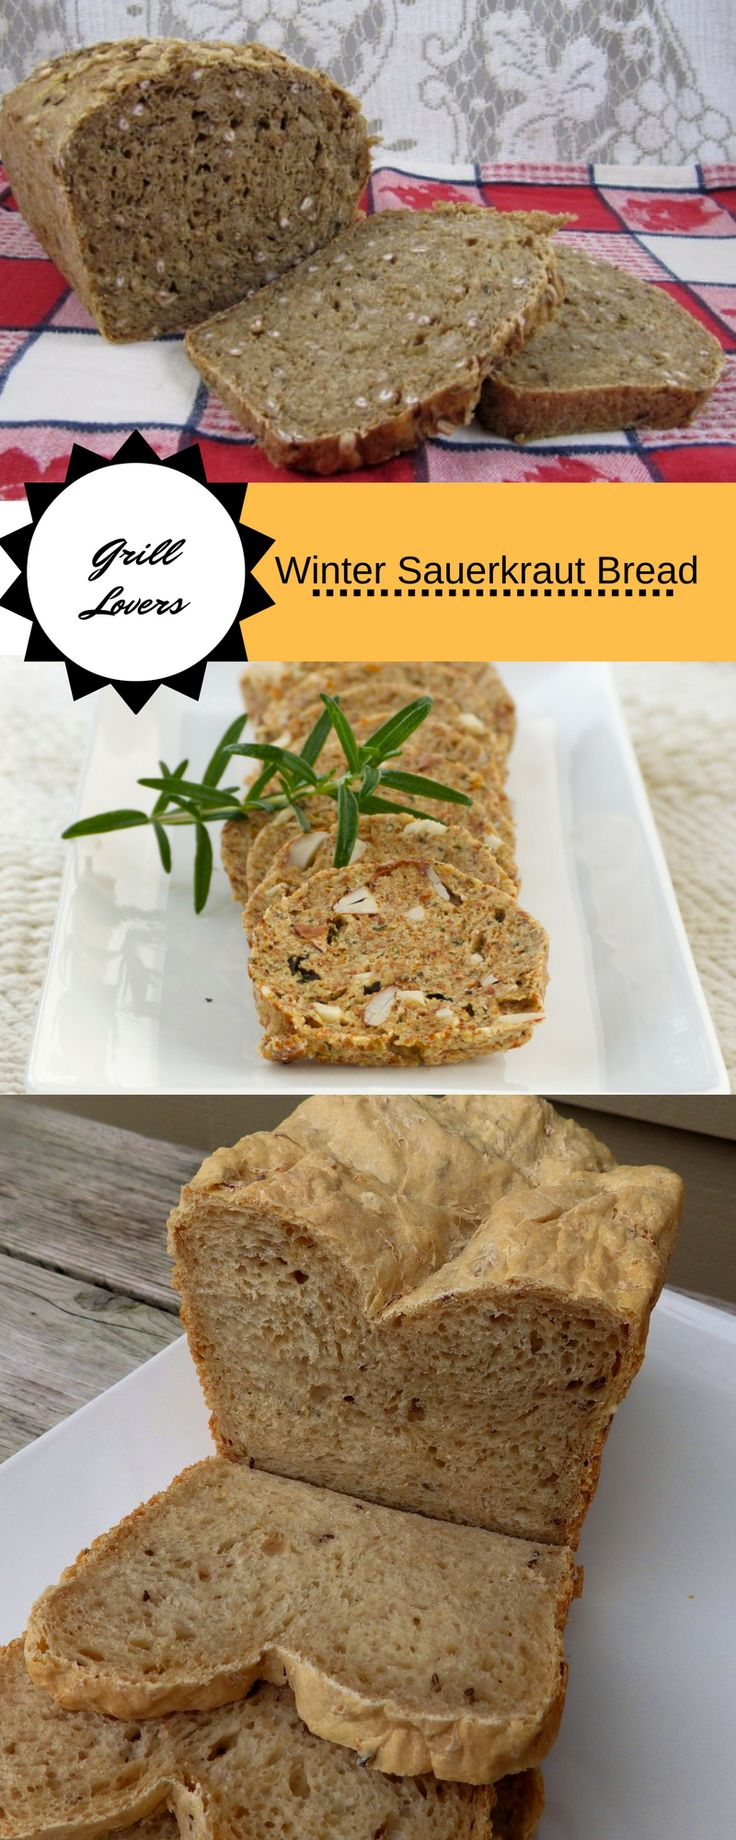 PrintGrill Lovers' Winter Sauerkraut Bread Recipe (Ready in about 3 hours | Servings 10) Ingredients• 1 cup sauerkraut, rinsed and drained • 3/4 cup water, warm • 1 tablespoon dark molasses • 2 tablespoons butter • 2 tablespoons sugar • 1/2 teaspoon allspice • 1 teaspoon caraway seed • 1 teaspoons salt • 2 cups[...]